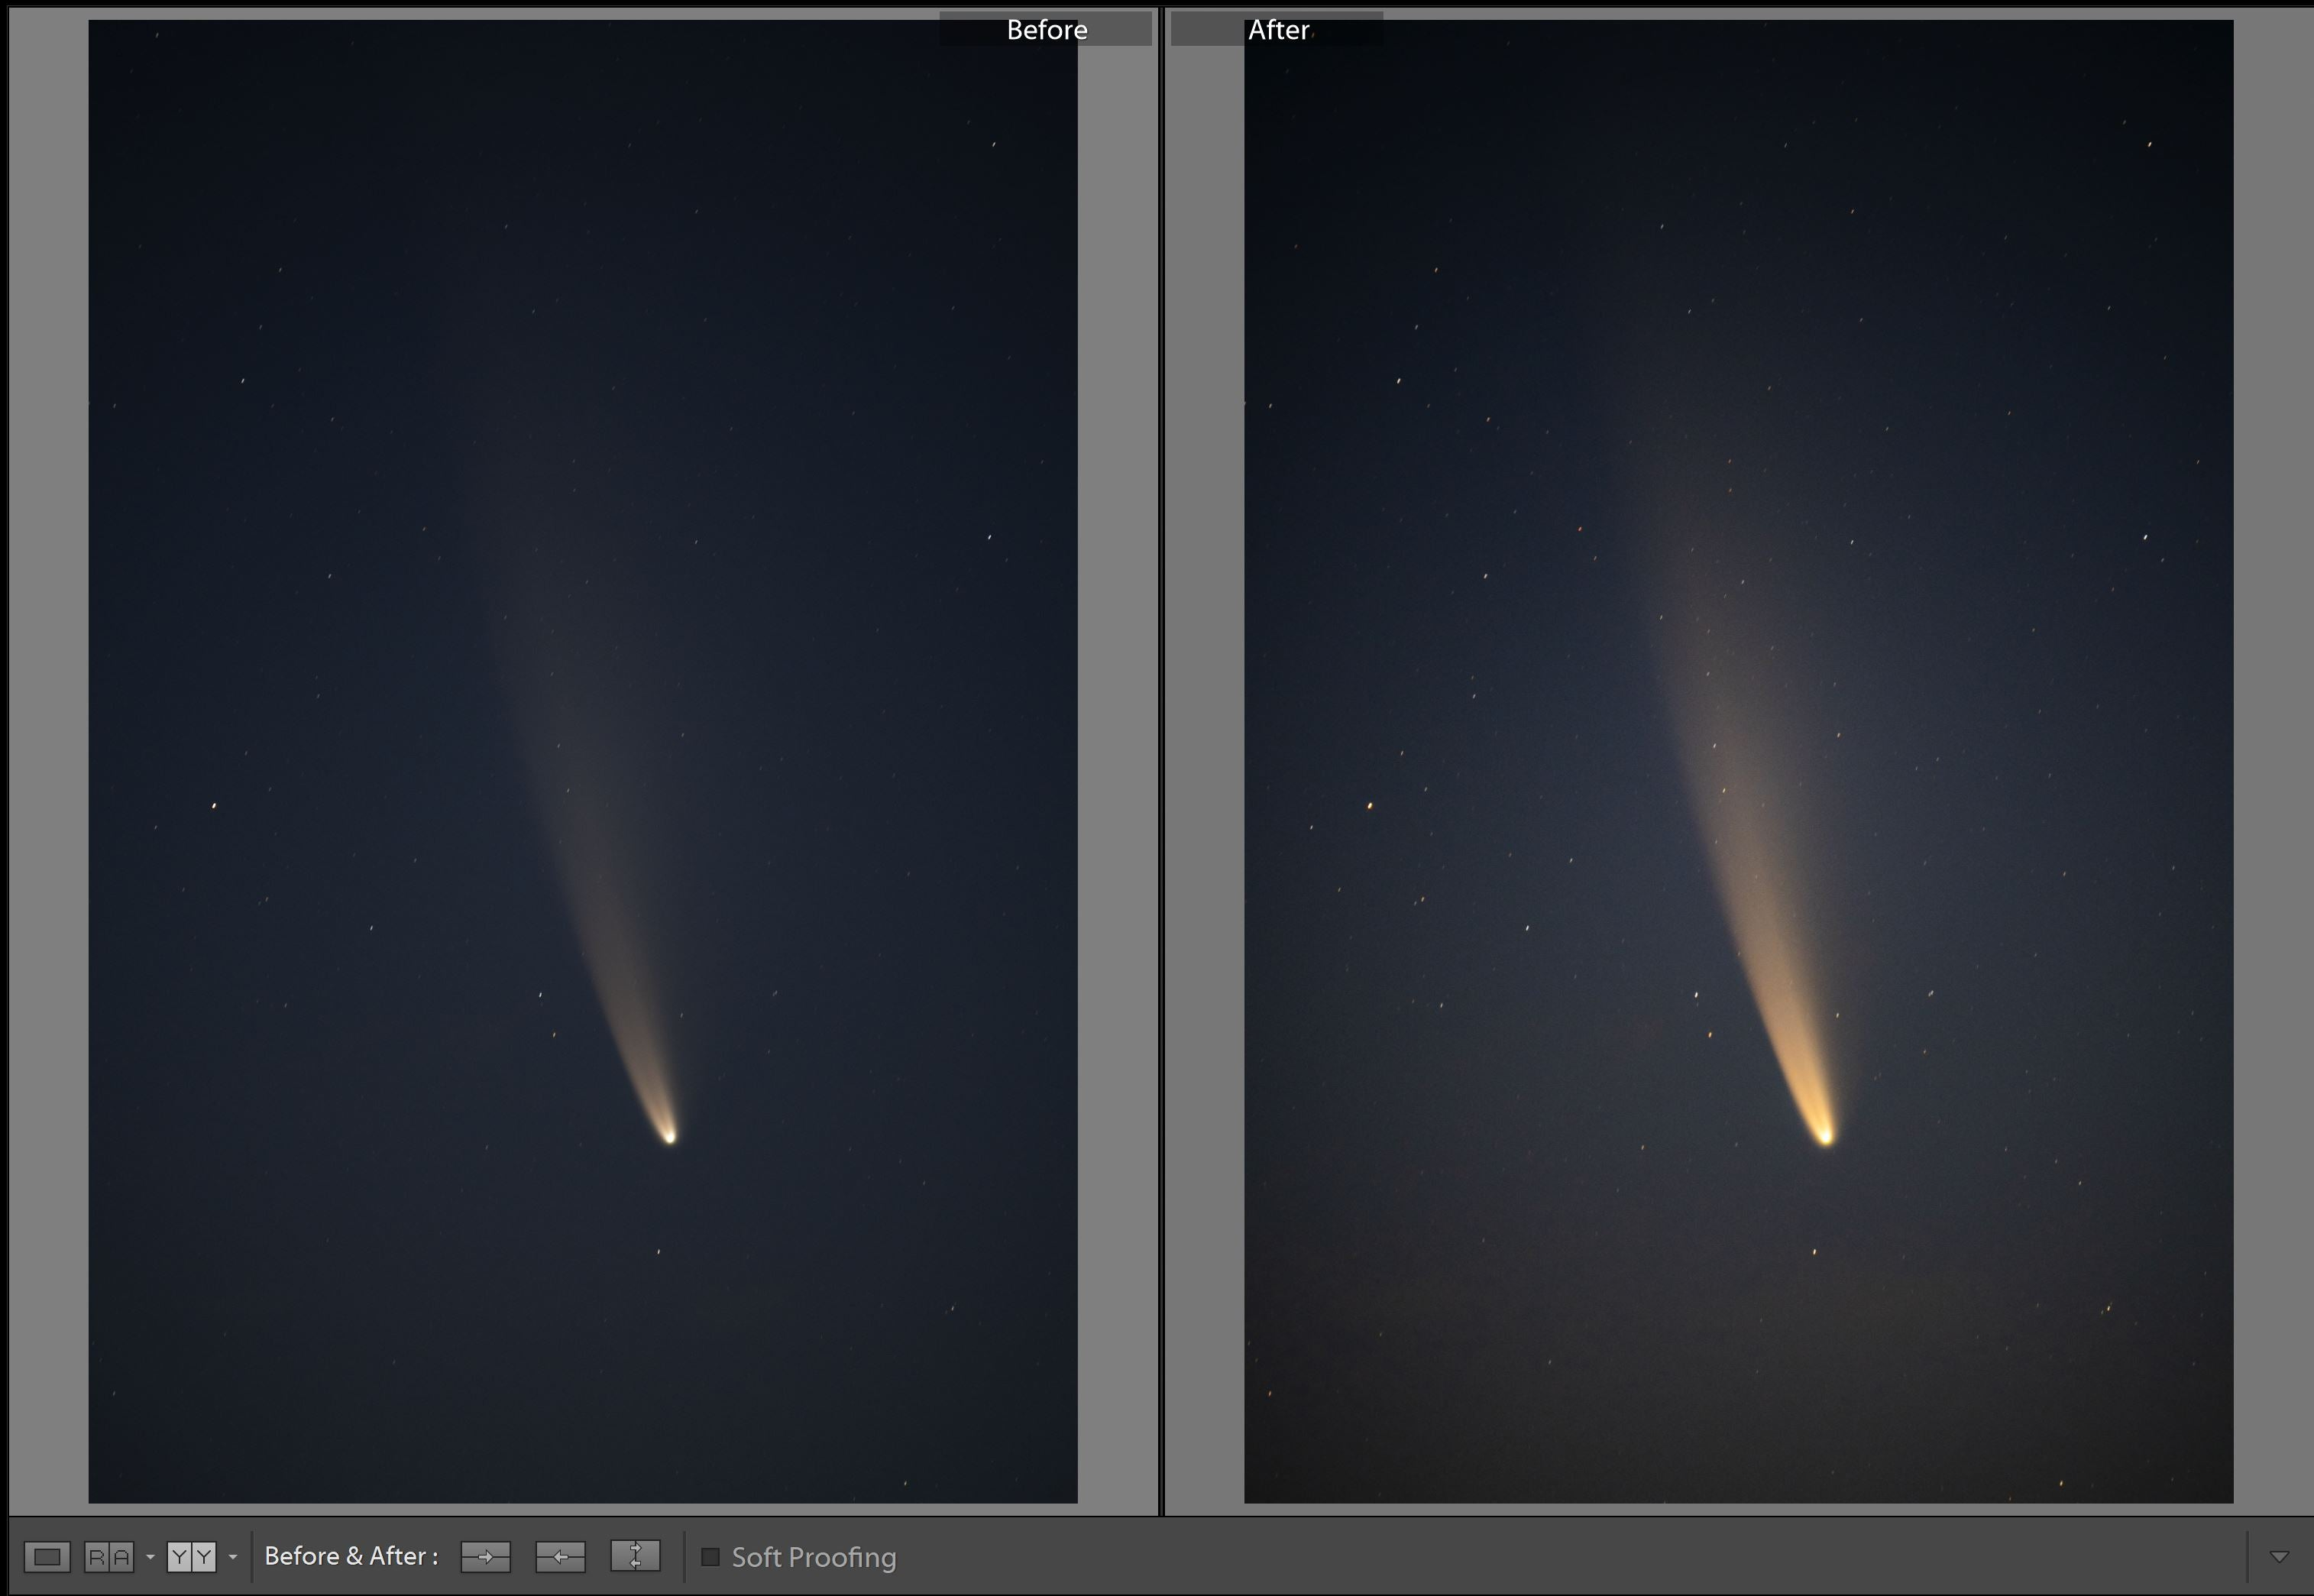 Comet Chase - Astrophotography Presets for Lightroom